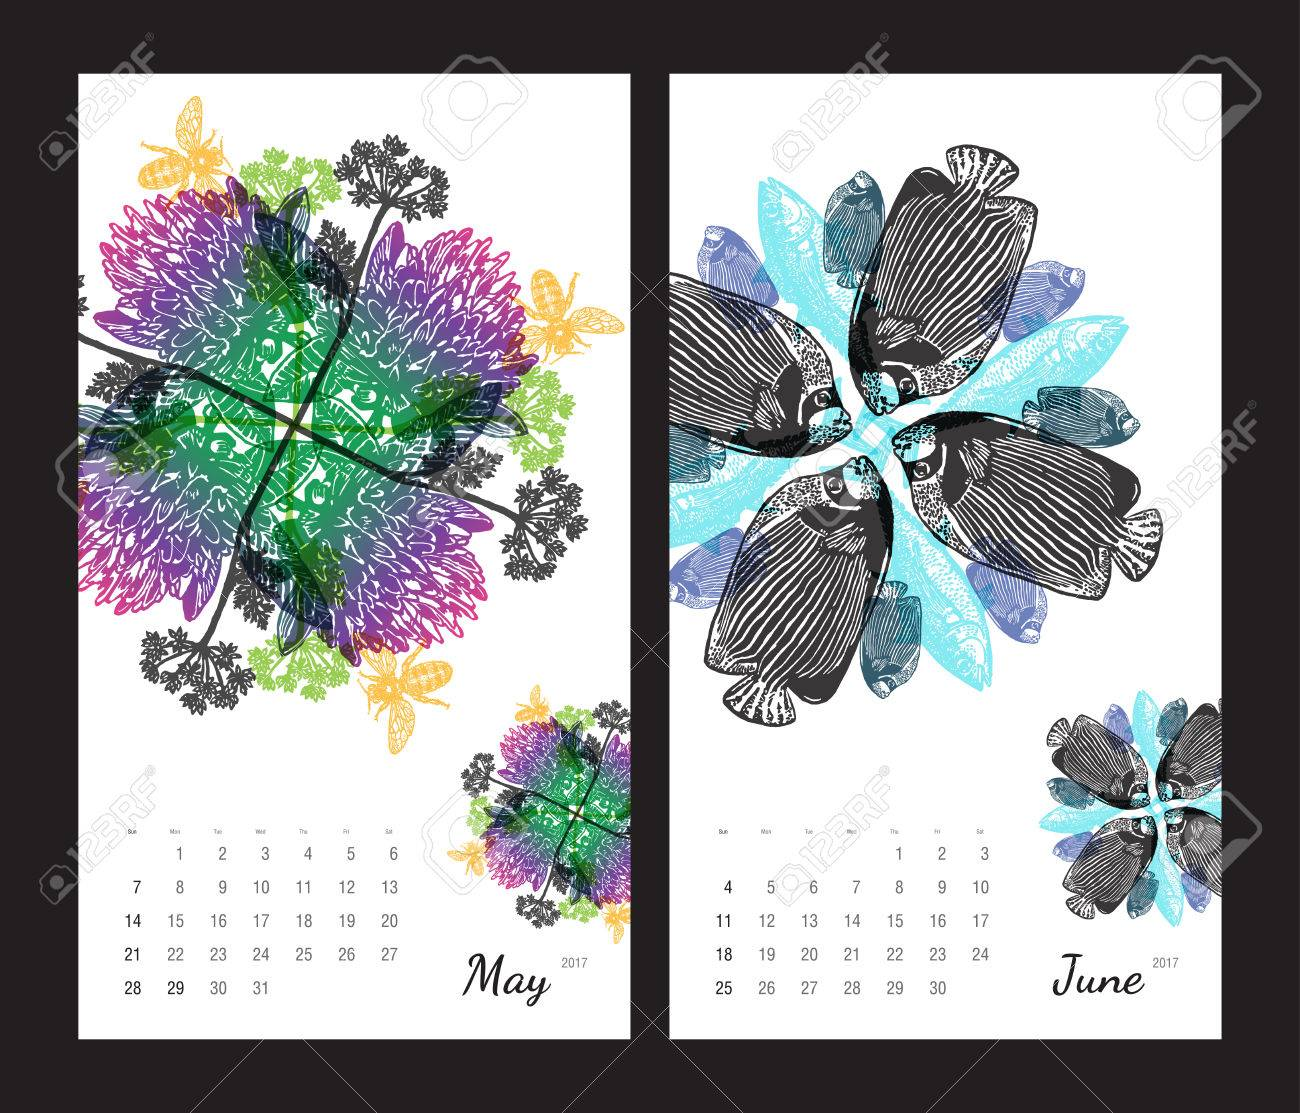 Pleasant Animal Printable Calendar 2017 With Flora And Fauna Fractals Download Free Architecture Designs Scobabritishbridgeorg